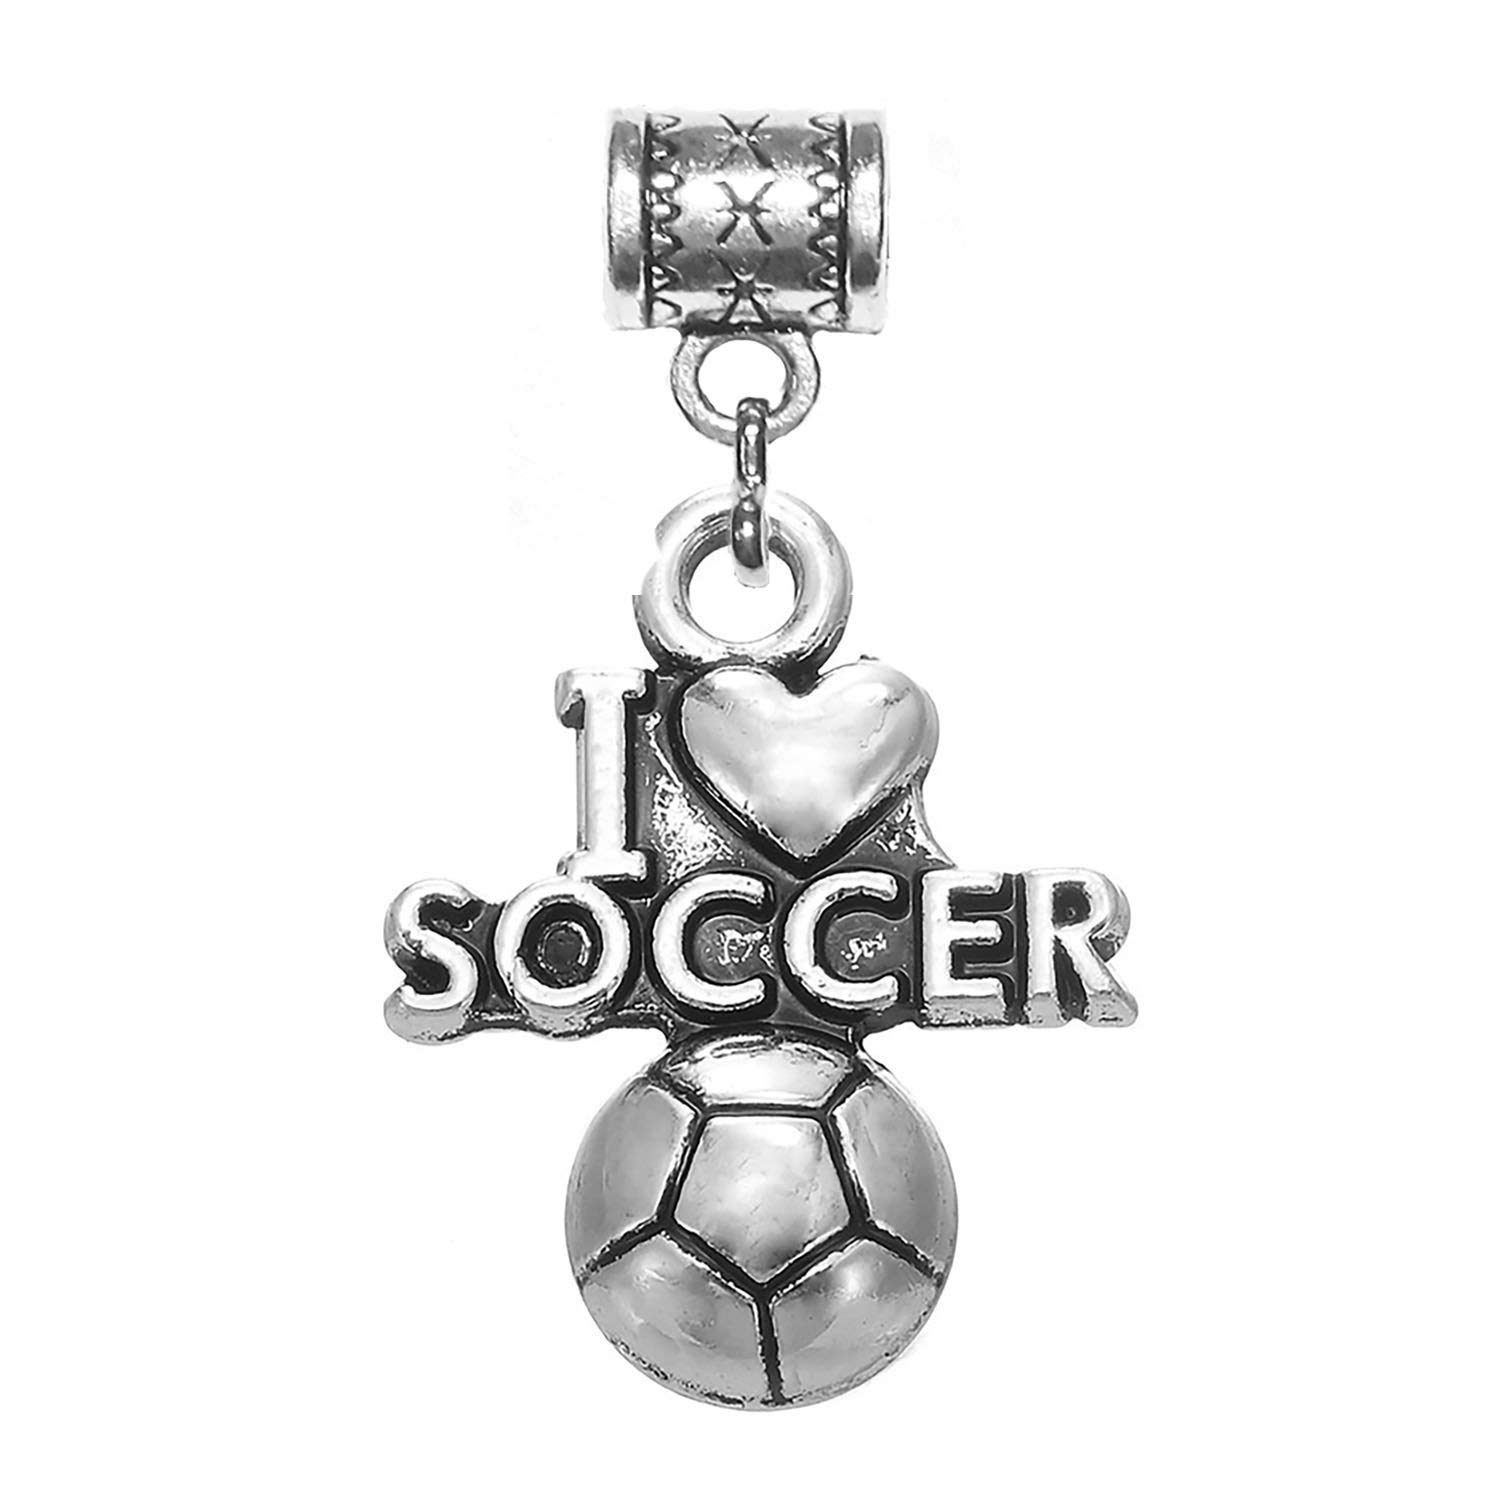 """I Love Soccer charm"" Tibetan Silver Hanging charm for large hole snake chain charm bracelet, or add to a key chain, pendant necklace or neck chain. A great gift for a sports lover."